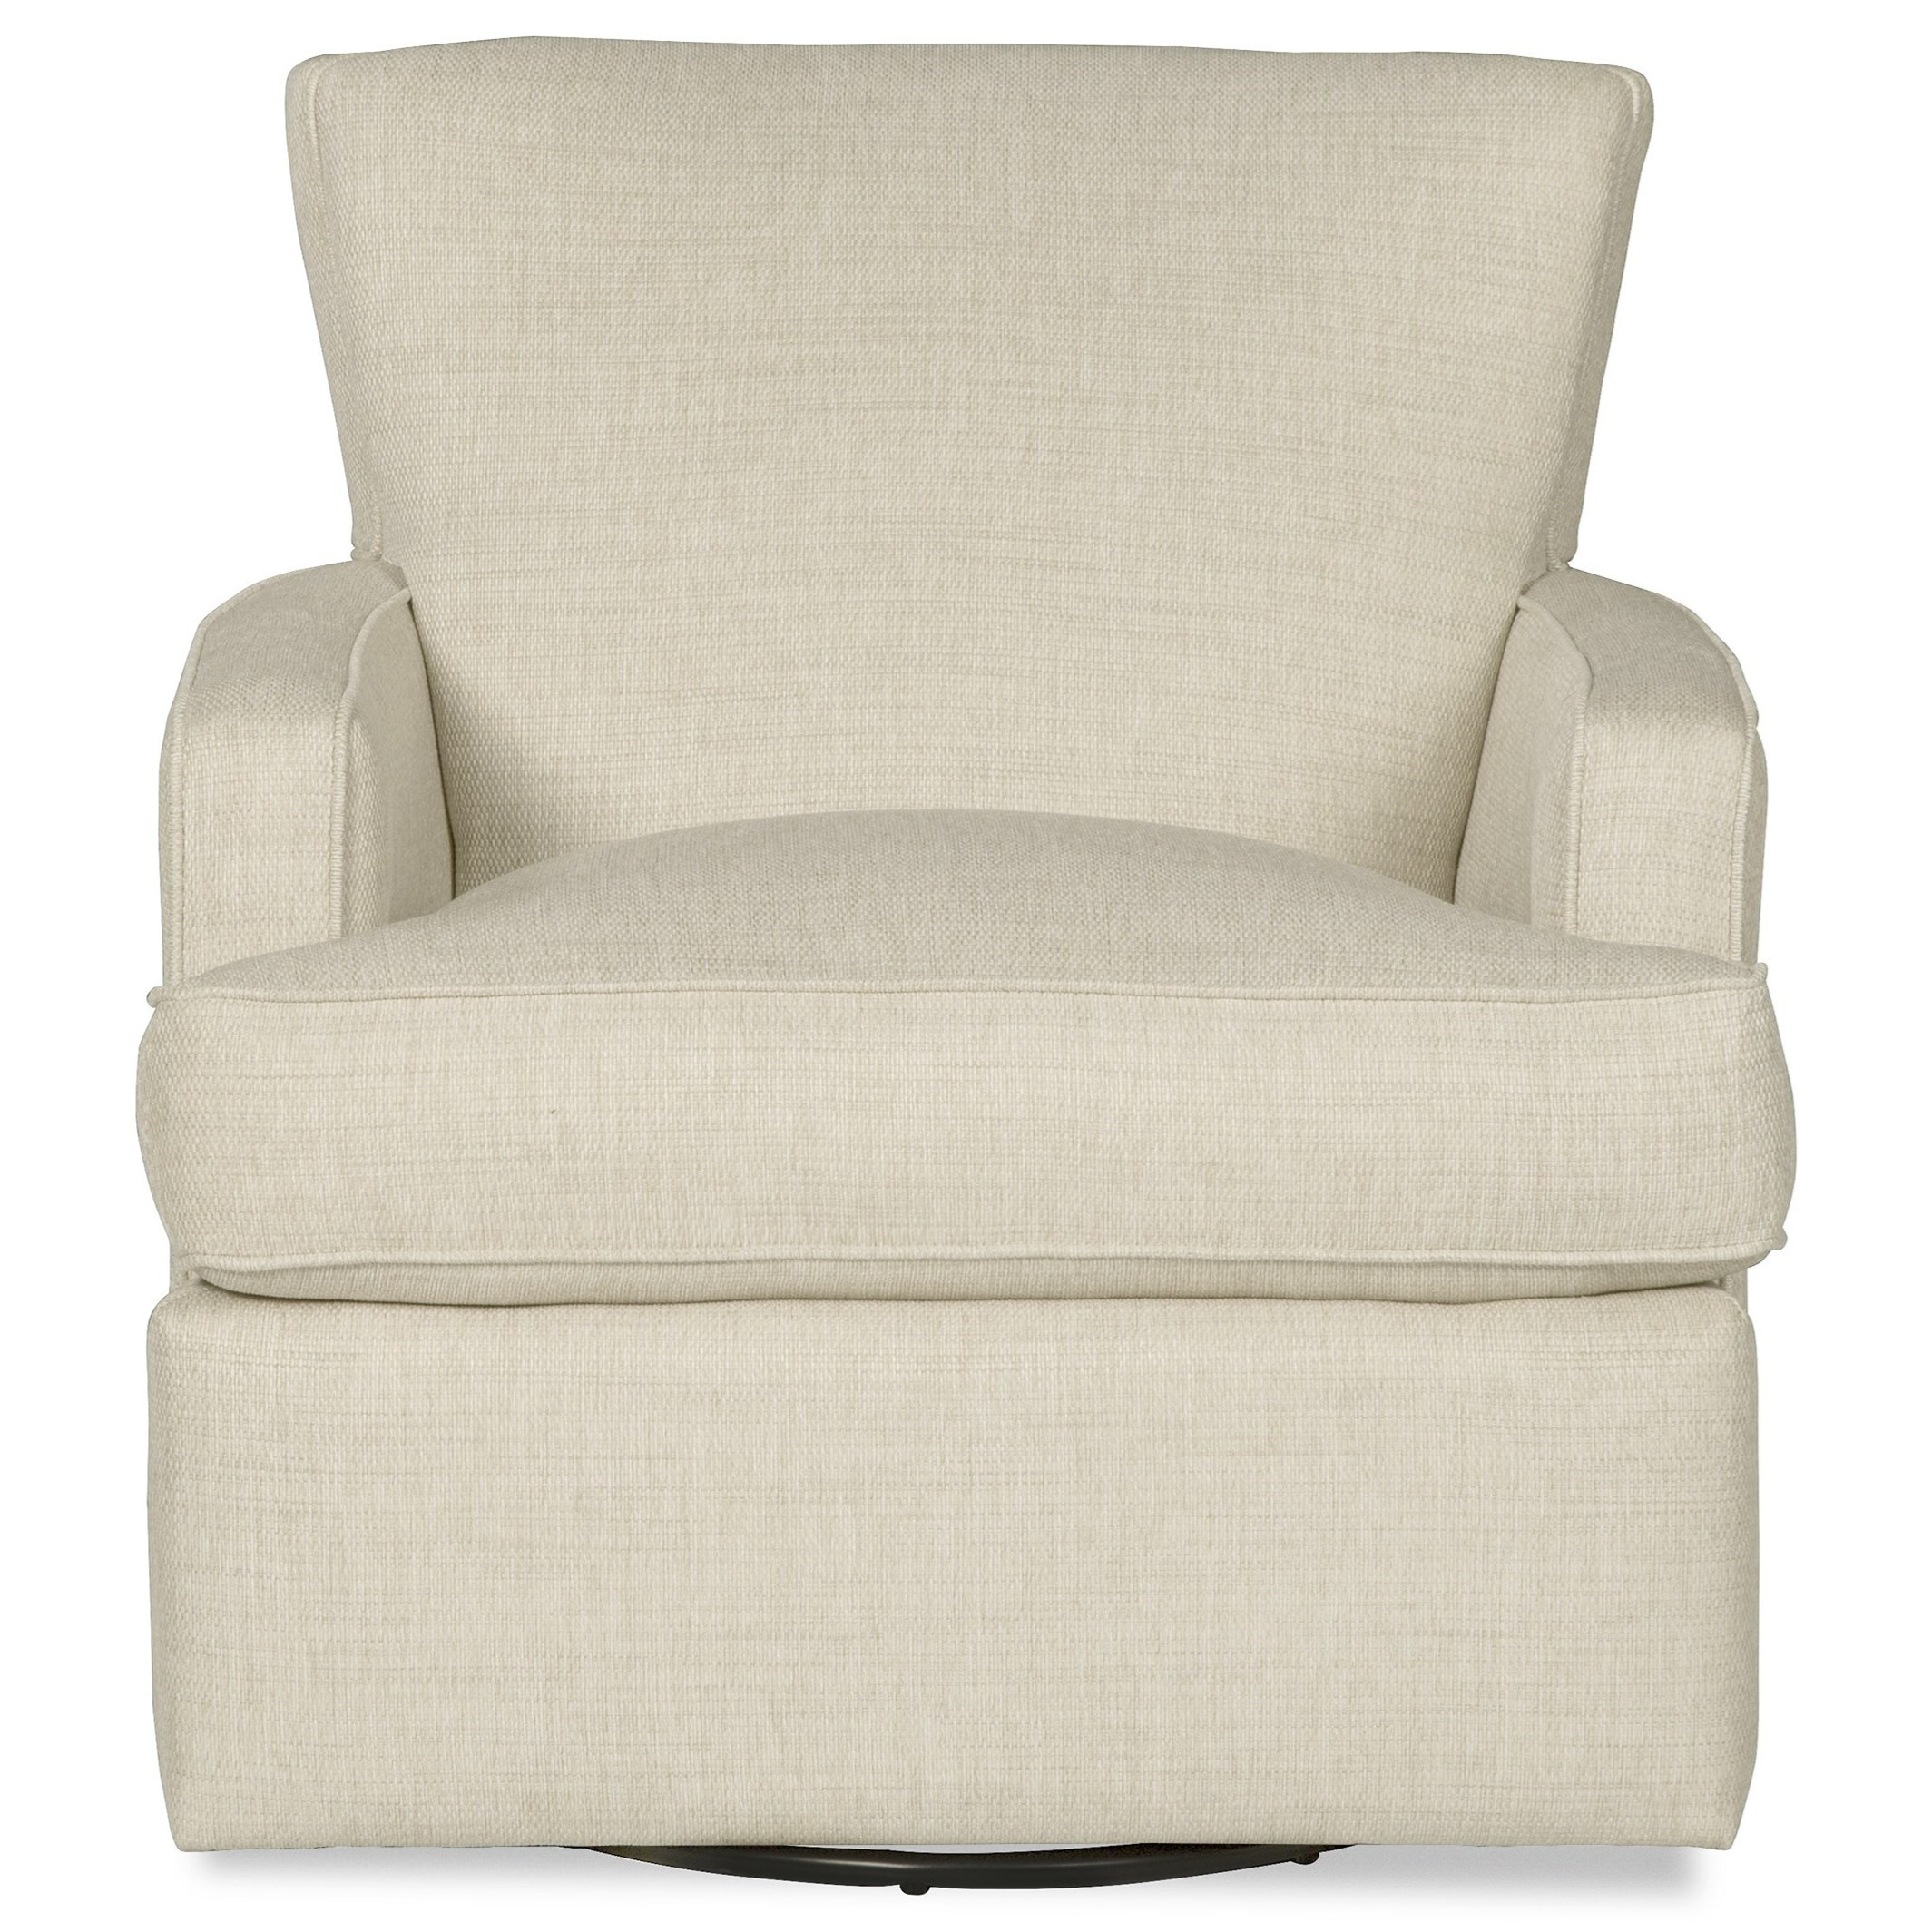 003510 Swivel Chair by Craftmaster at Turk Furniture